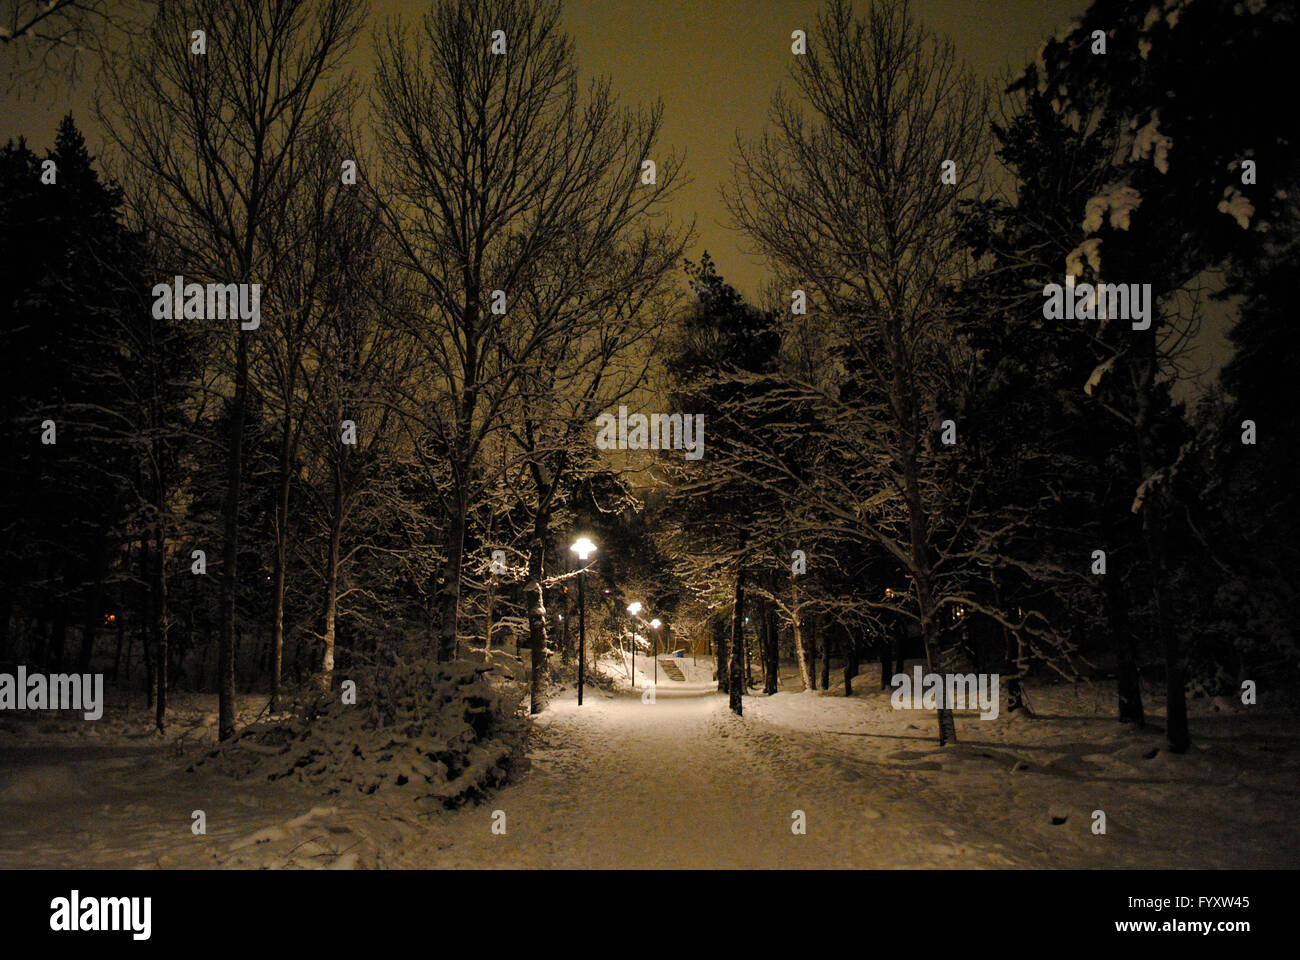 Sweden. Stockholm. Snowy park at night. - Stock Image